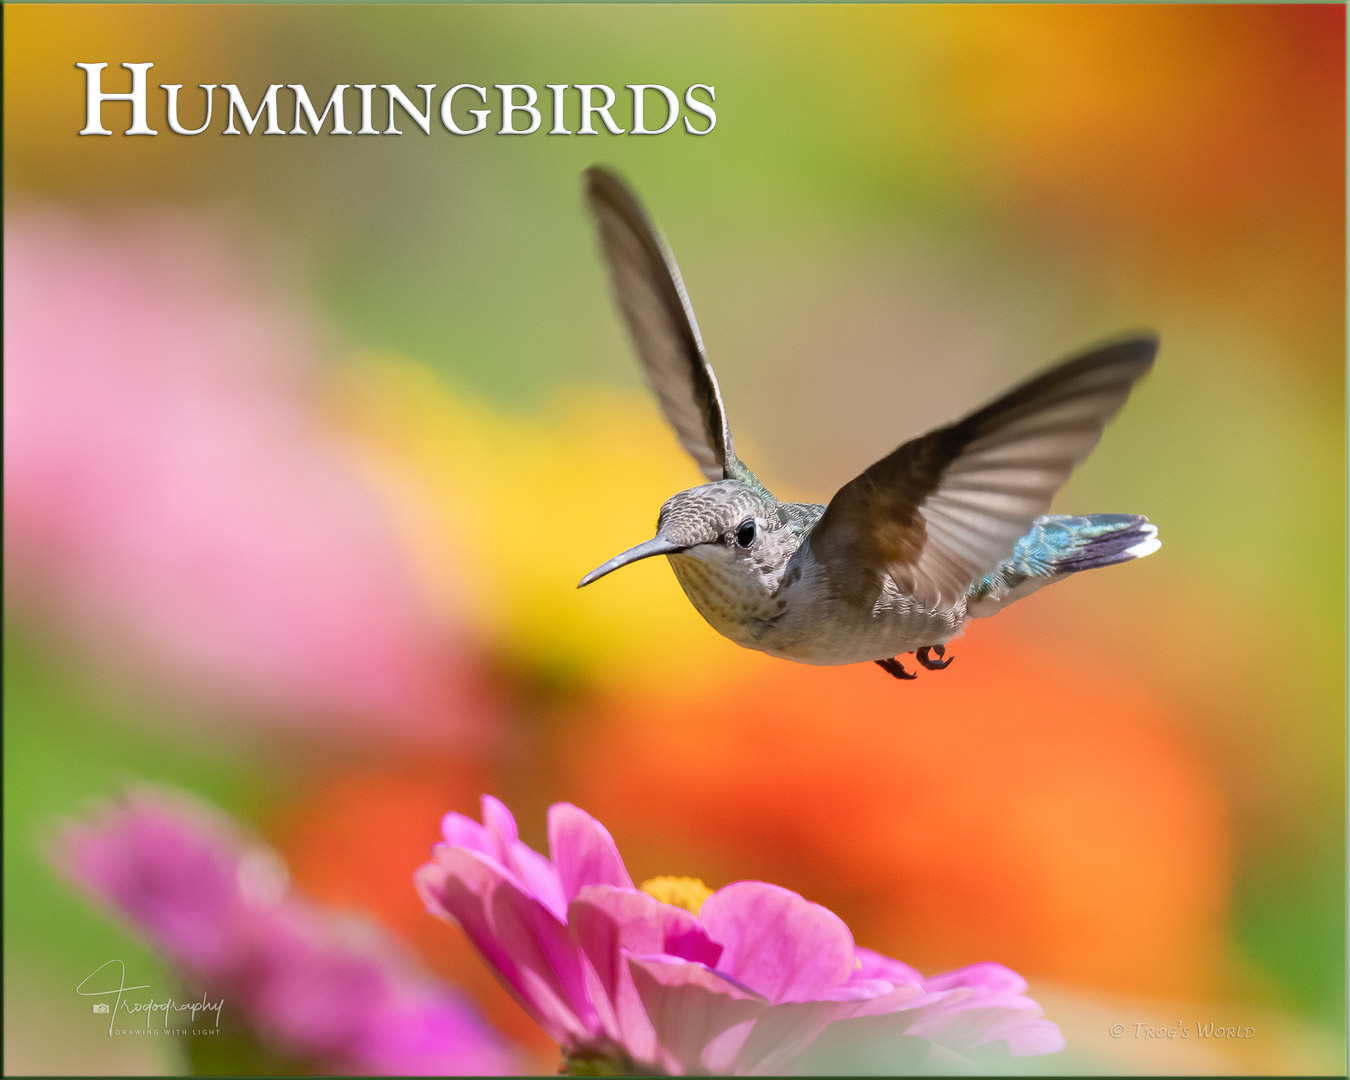 Hummingbird hovering over the flowers